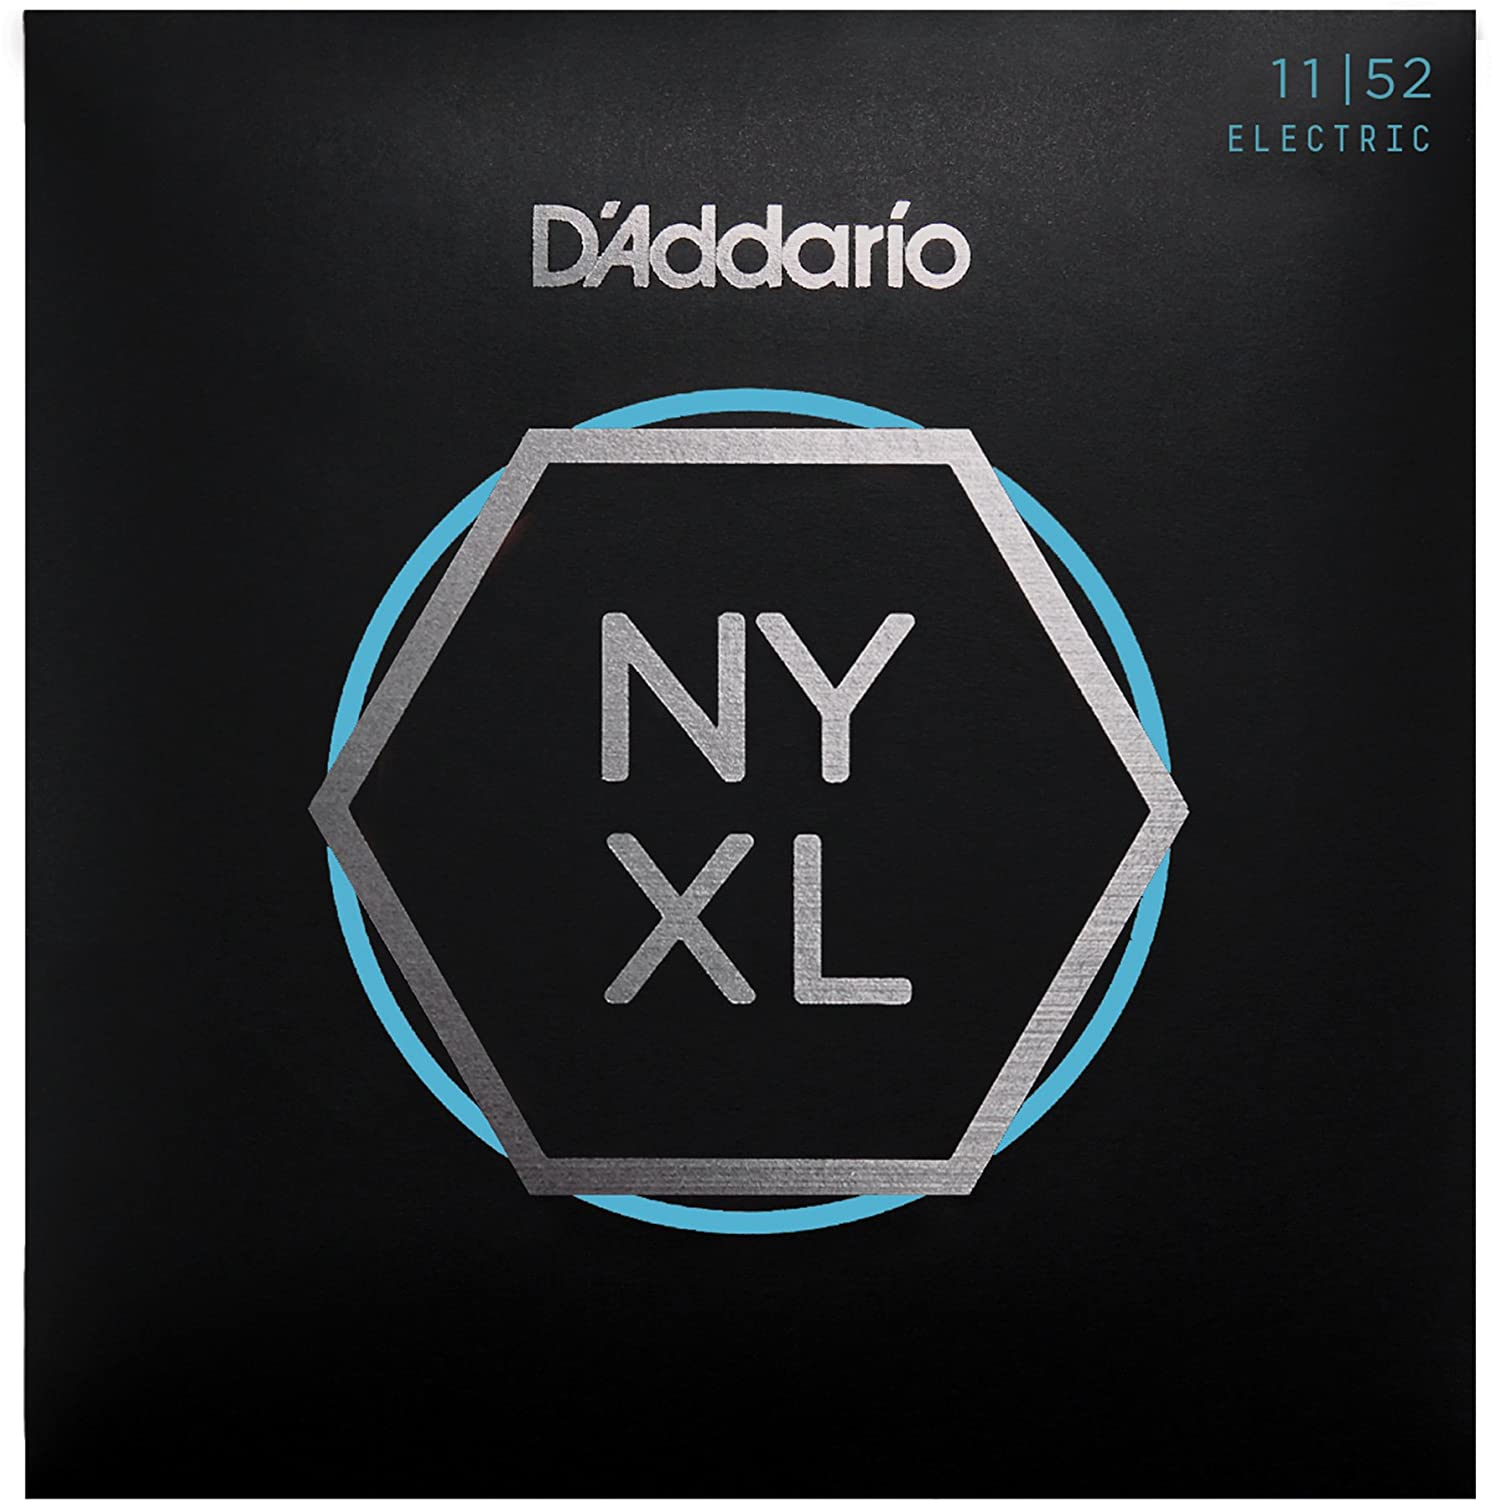 D'Addario NYXL1052 Nickel Plated Electric Guitar Strings, Custom D' Addario